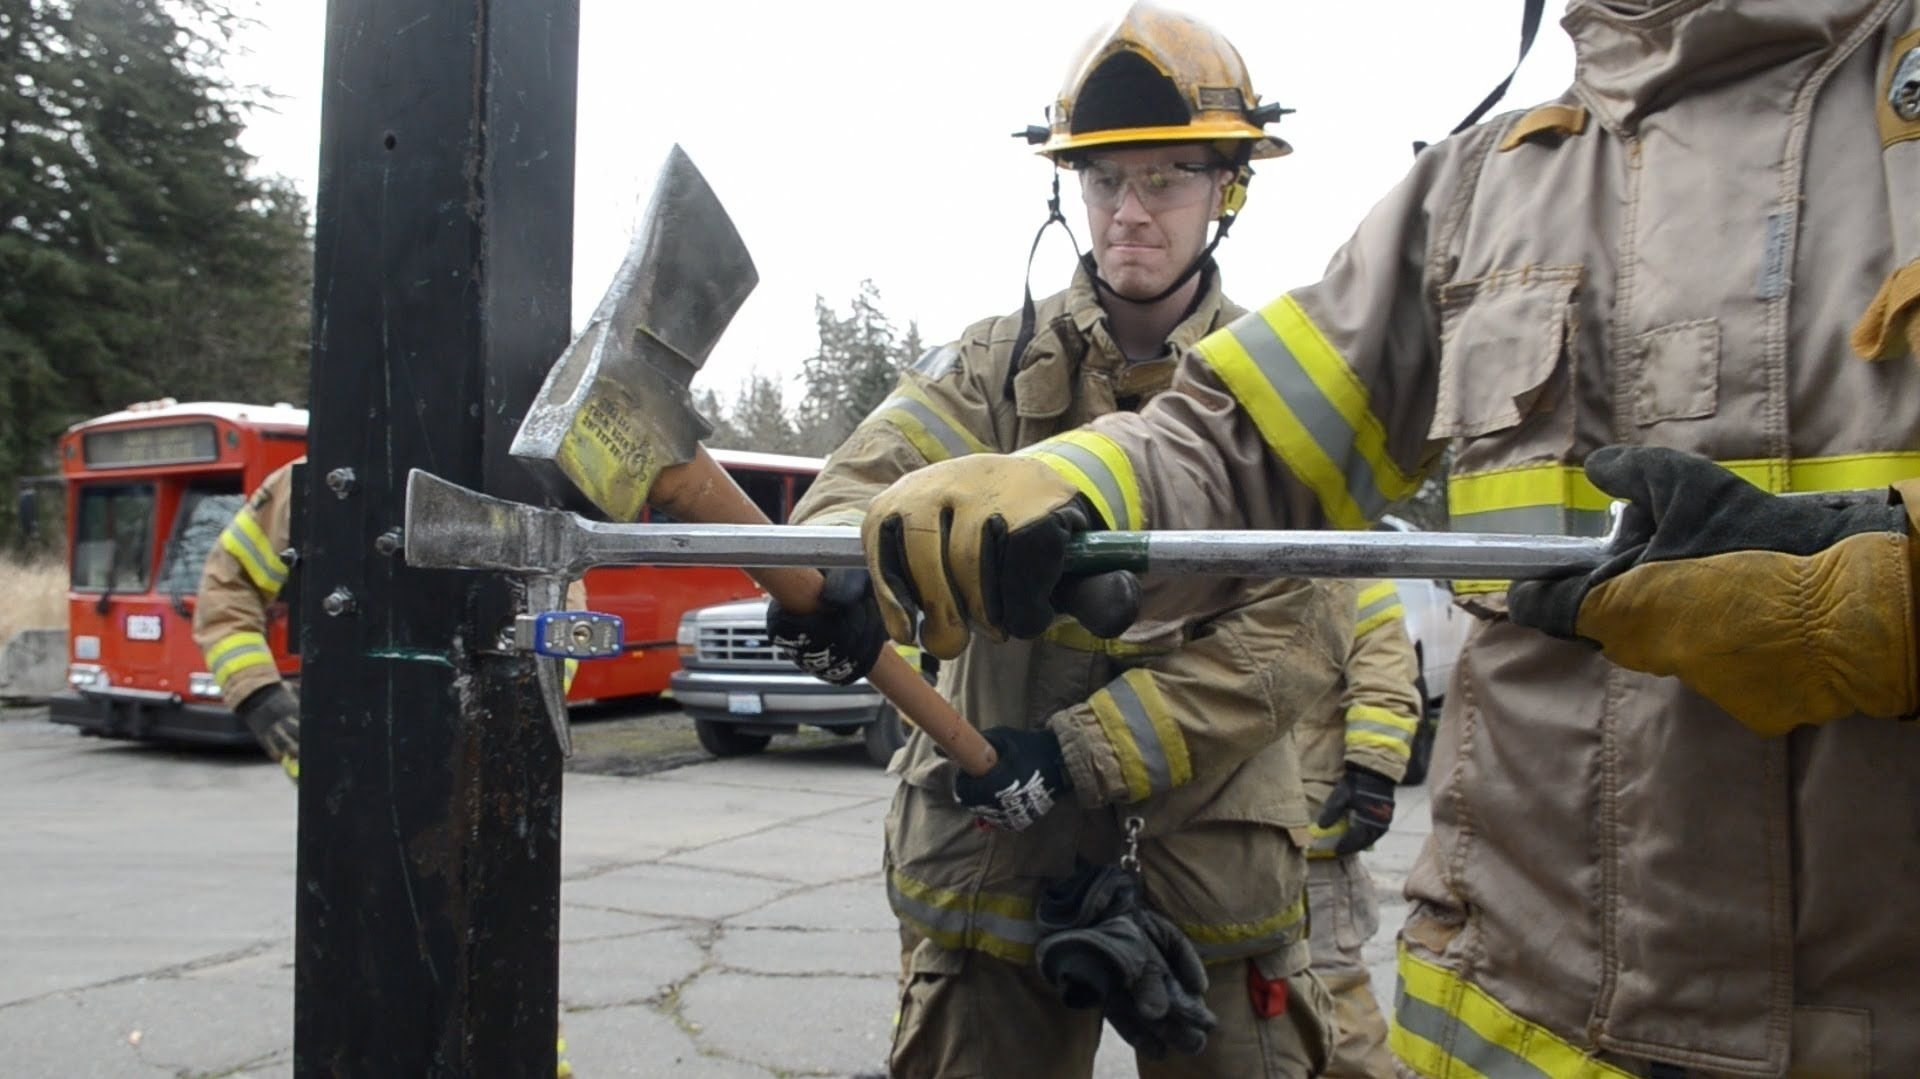 10 Pretty Volunteer Fire Department Training Ideas firefighter forcible entry training game show funny pinterest 2021